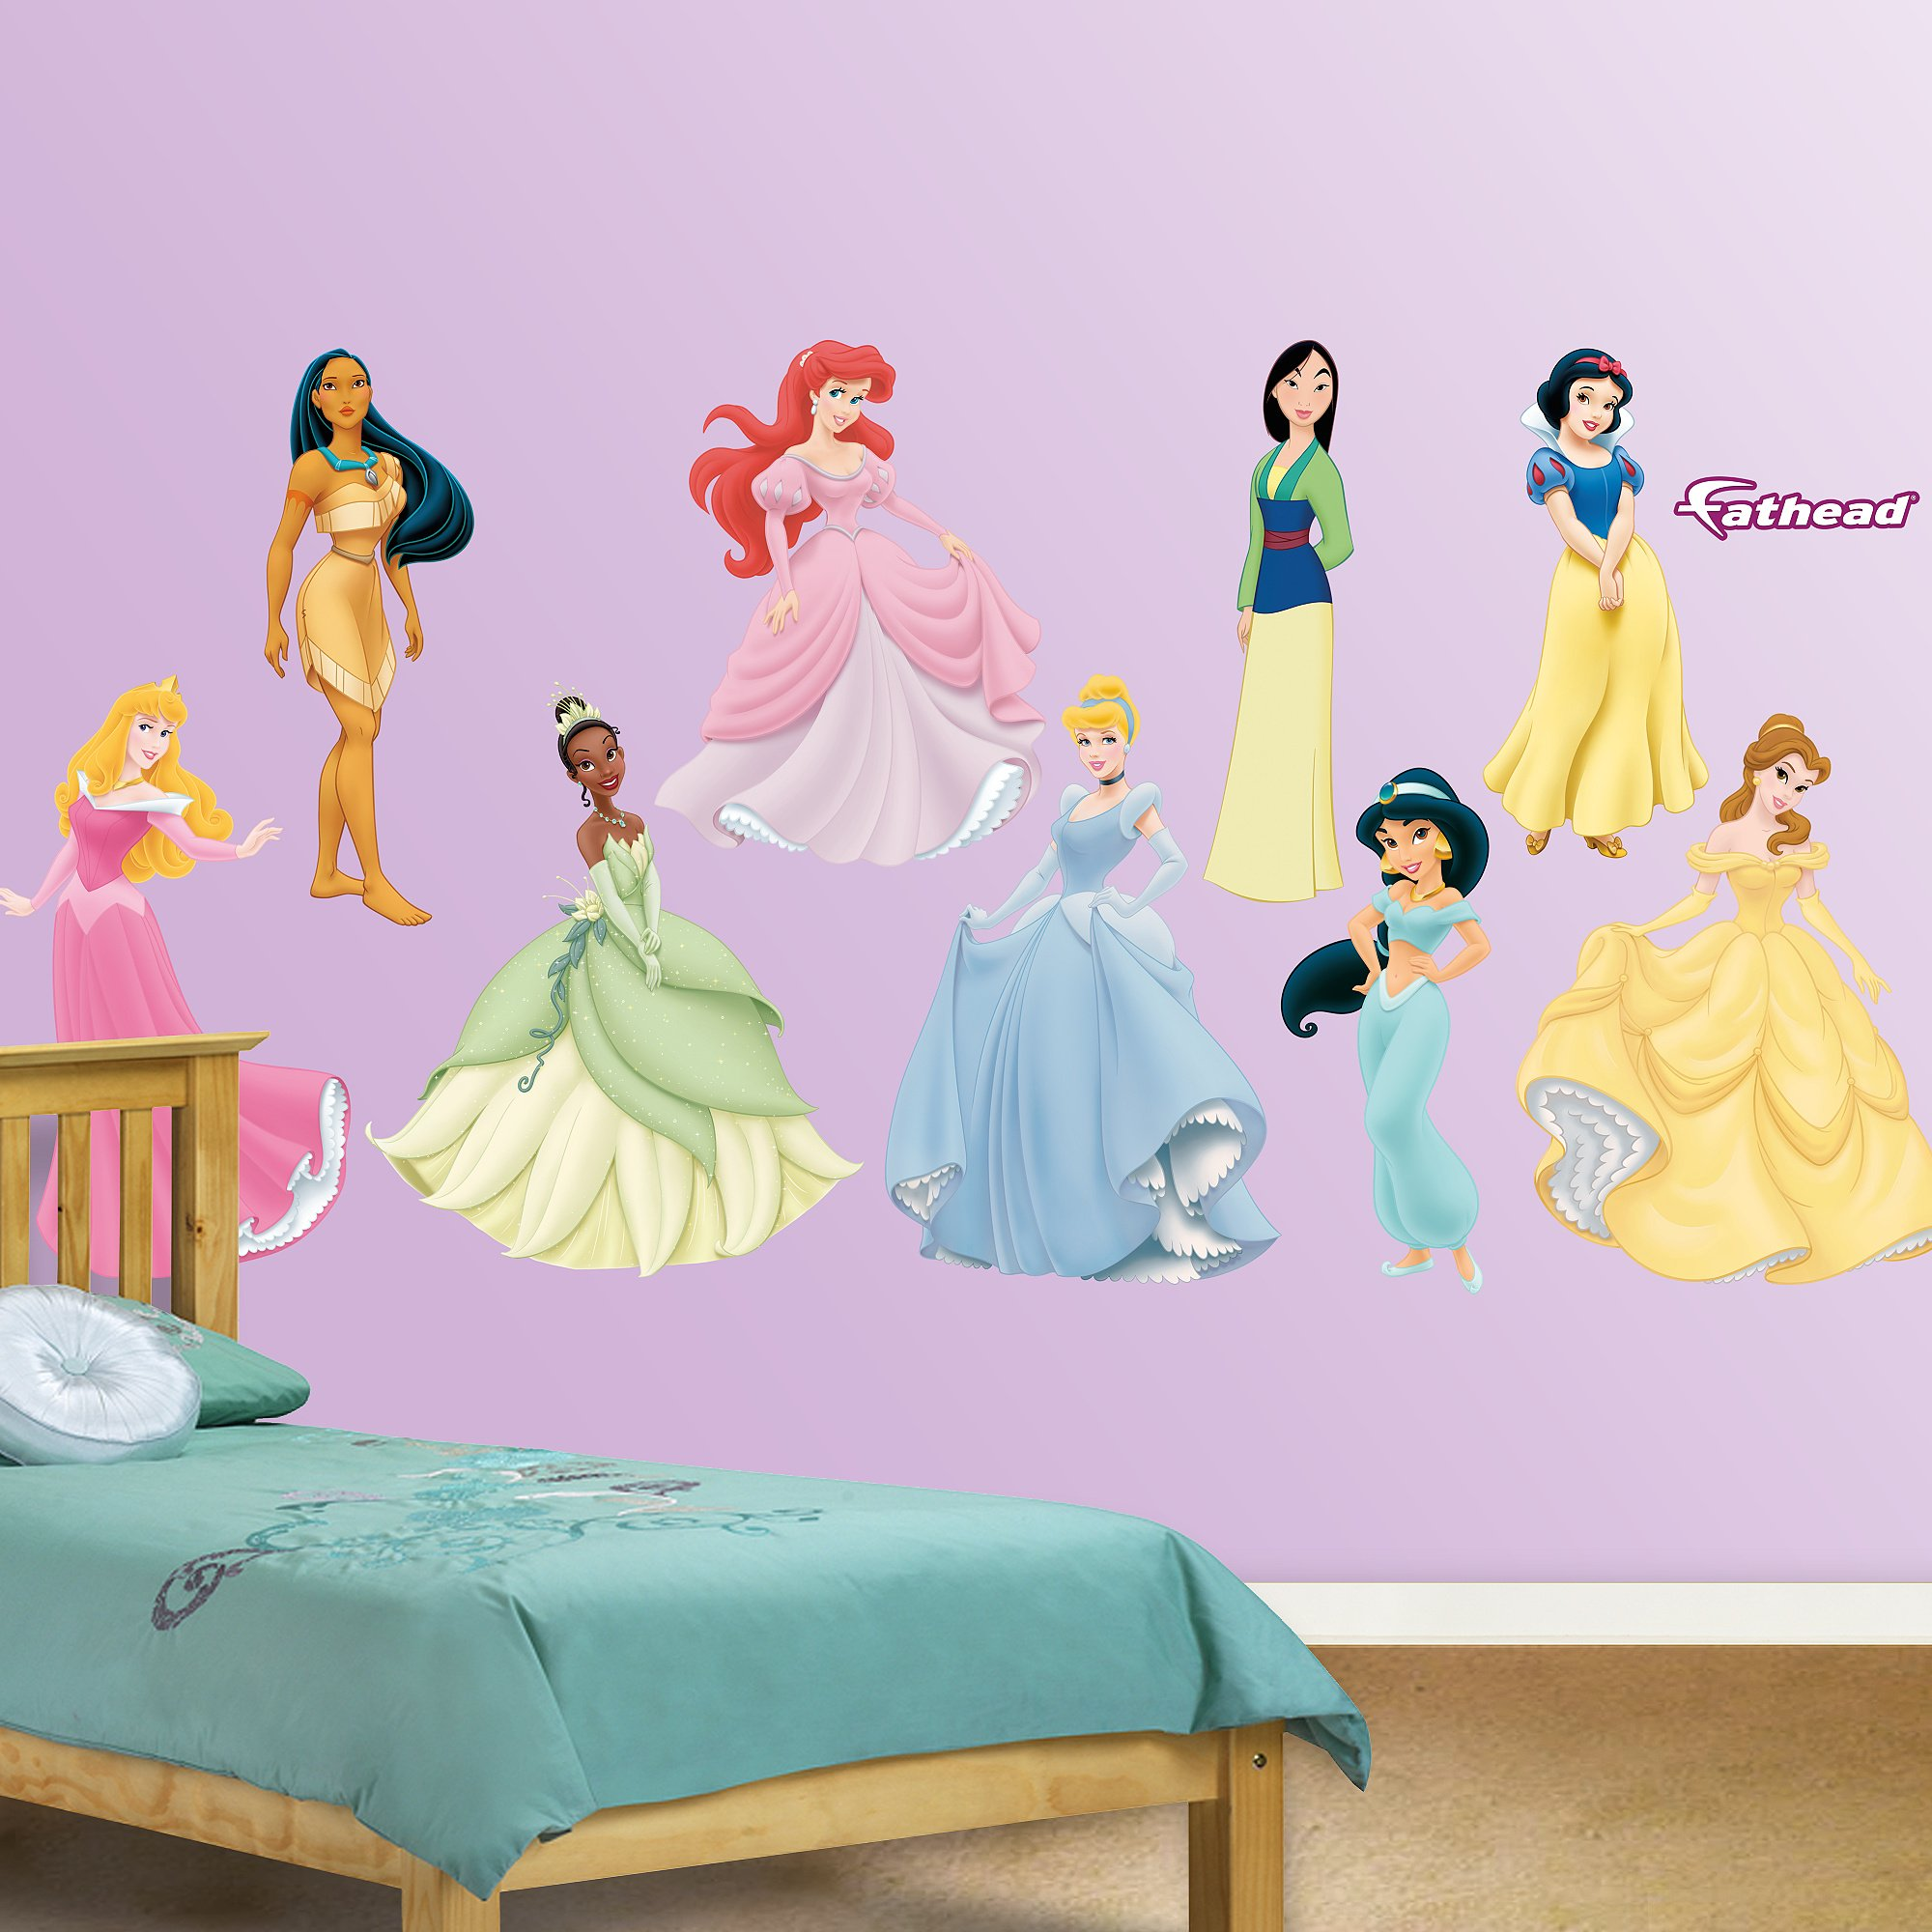 FATHEAD Disney Princess Collection Graphic Wall Décor by FATHEAD